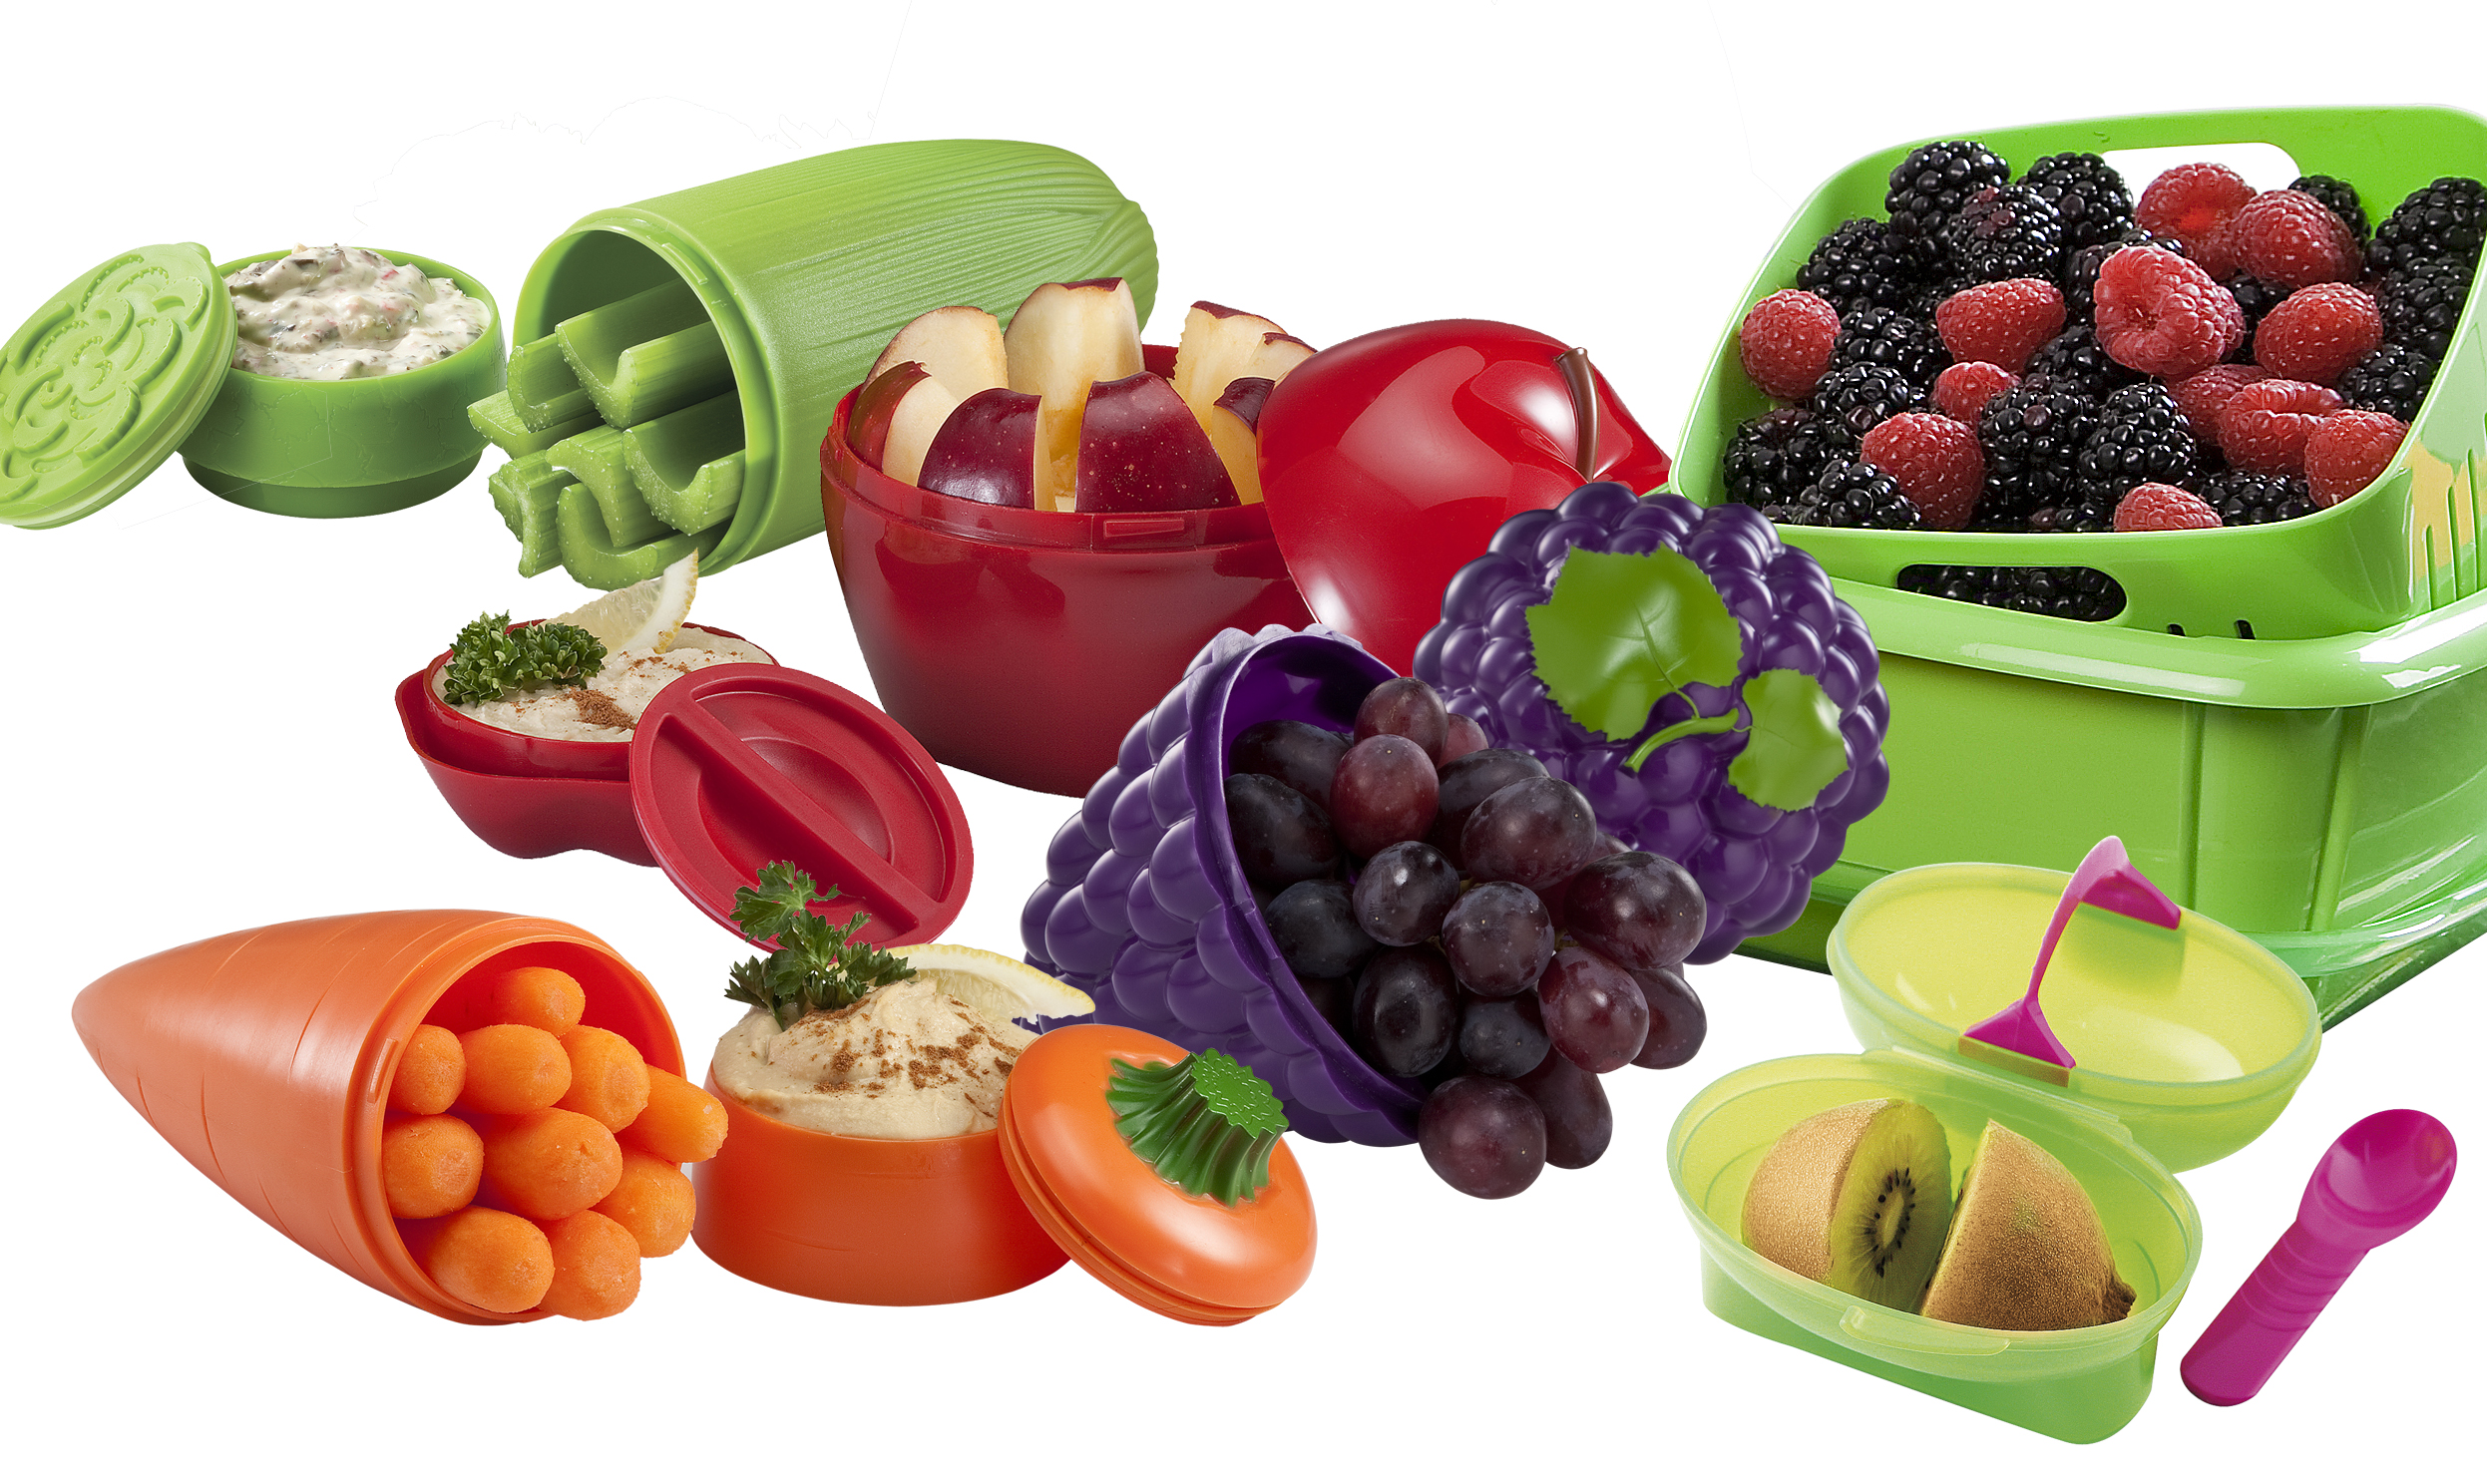 snack containers with fruit and veggies